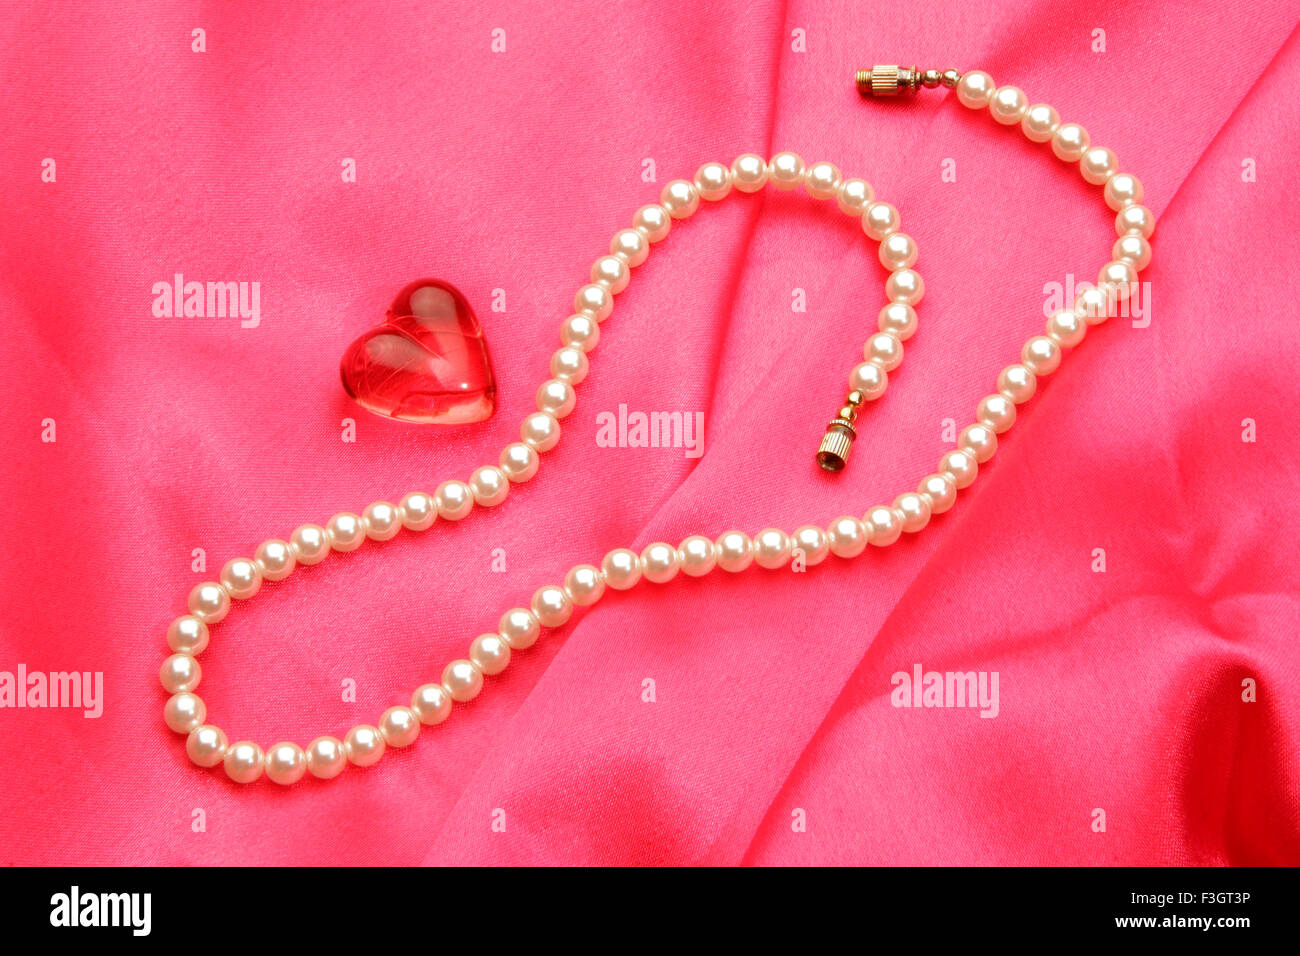 Jewellery in form pearl necklace with synthetic red gem stone of heart shape against pink satin background - Stock Image